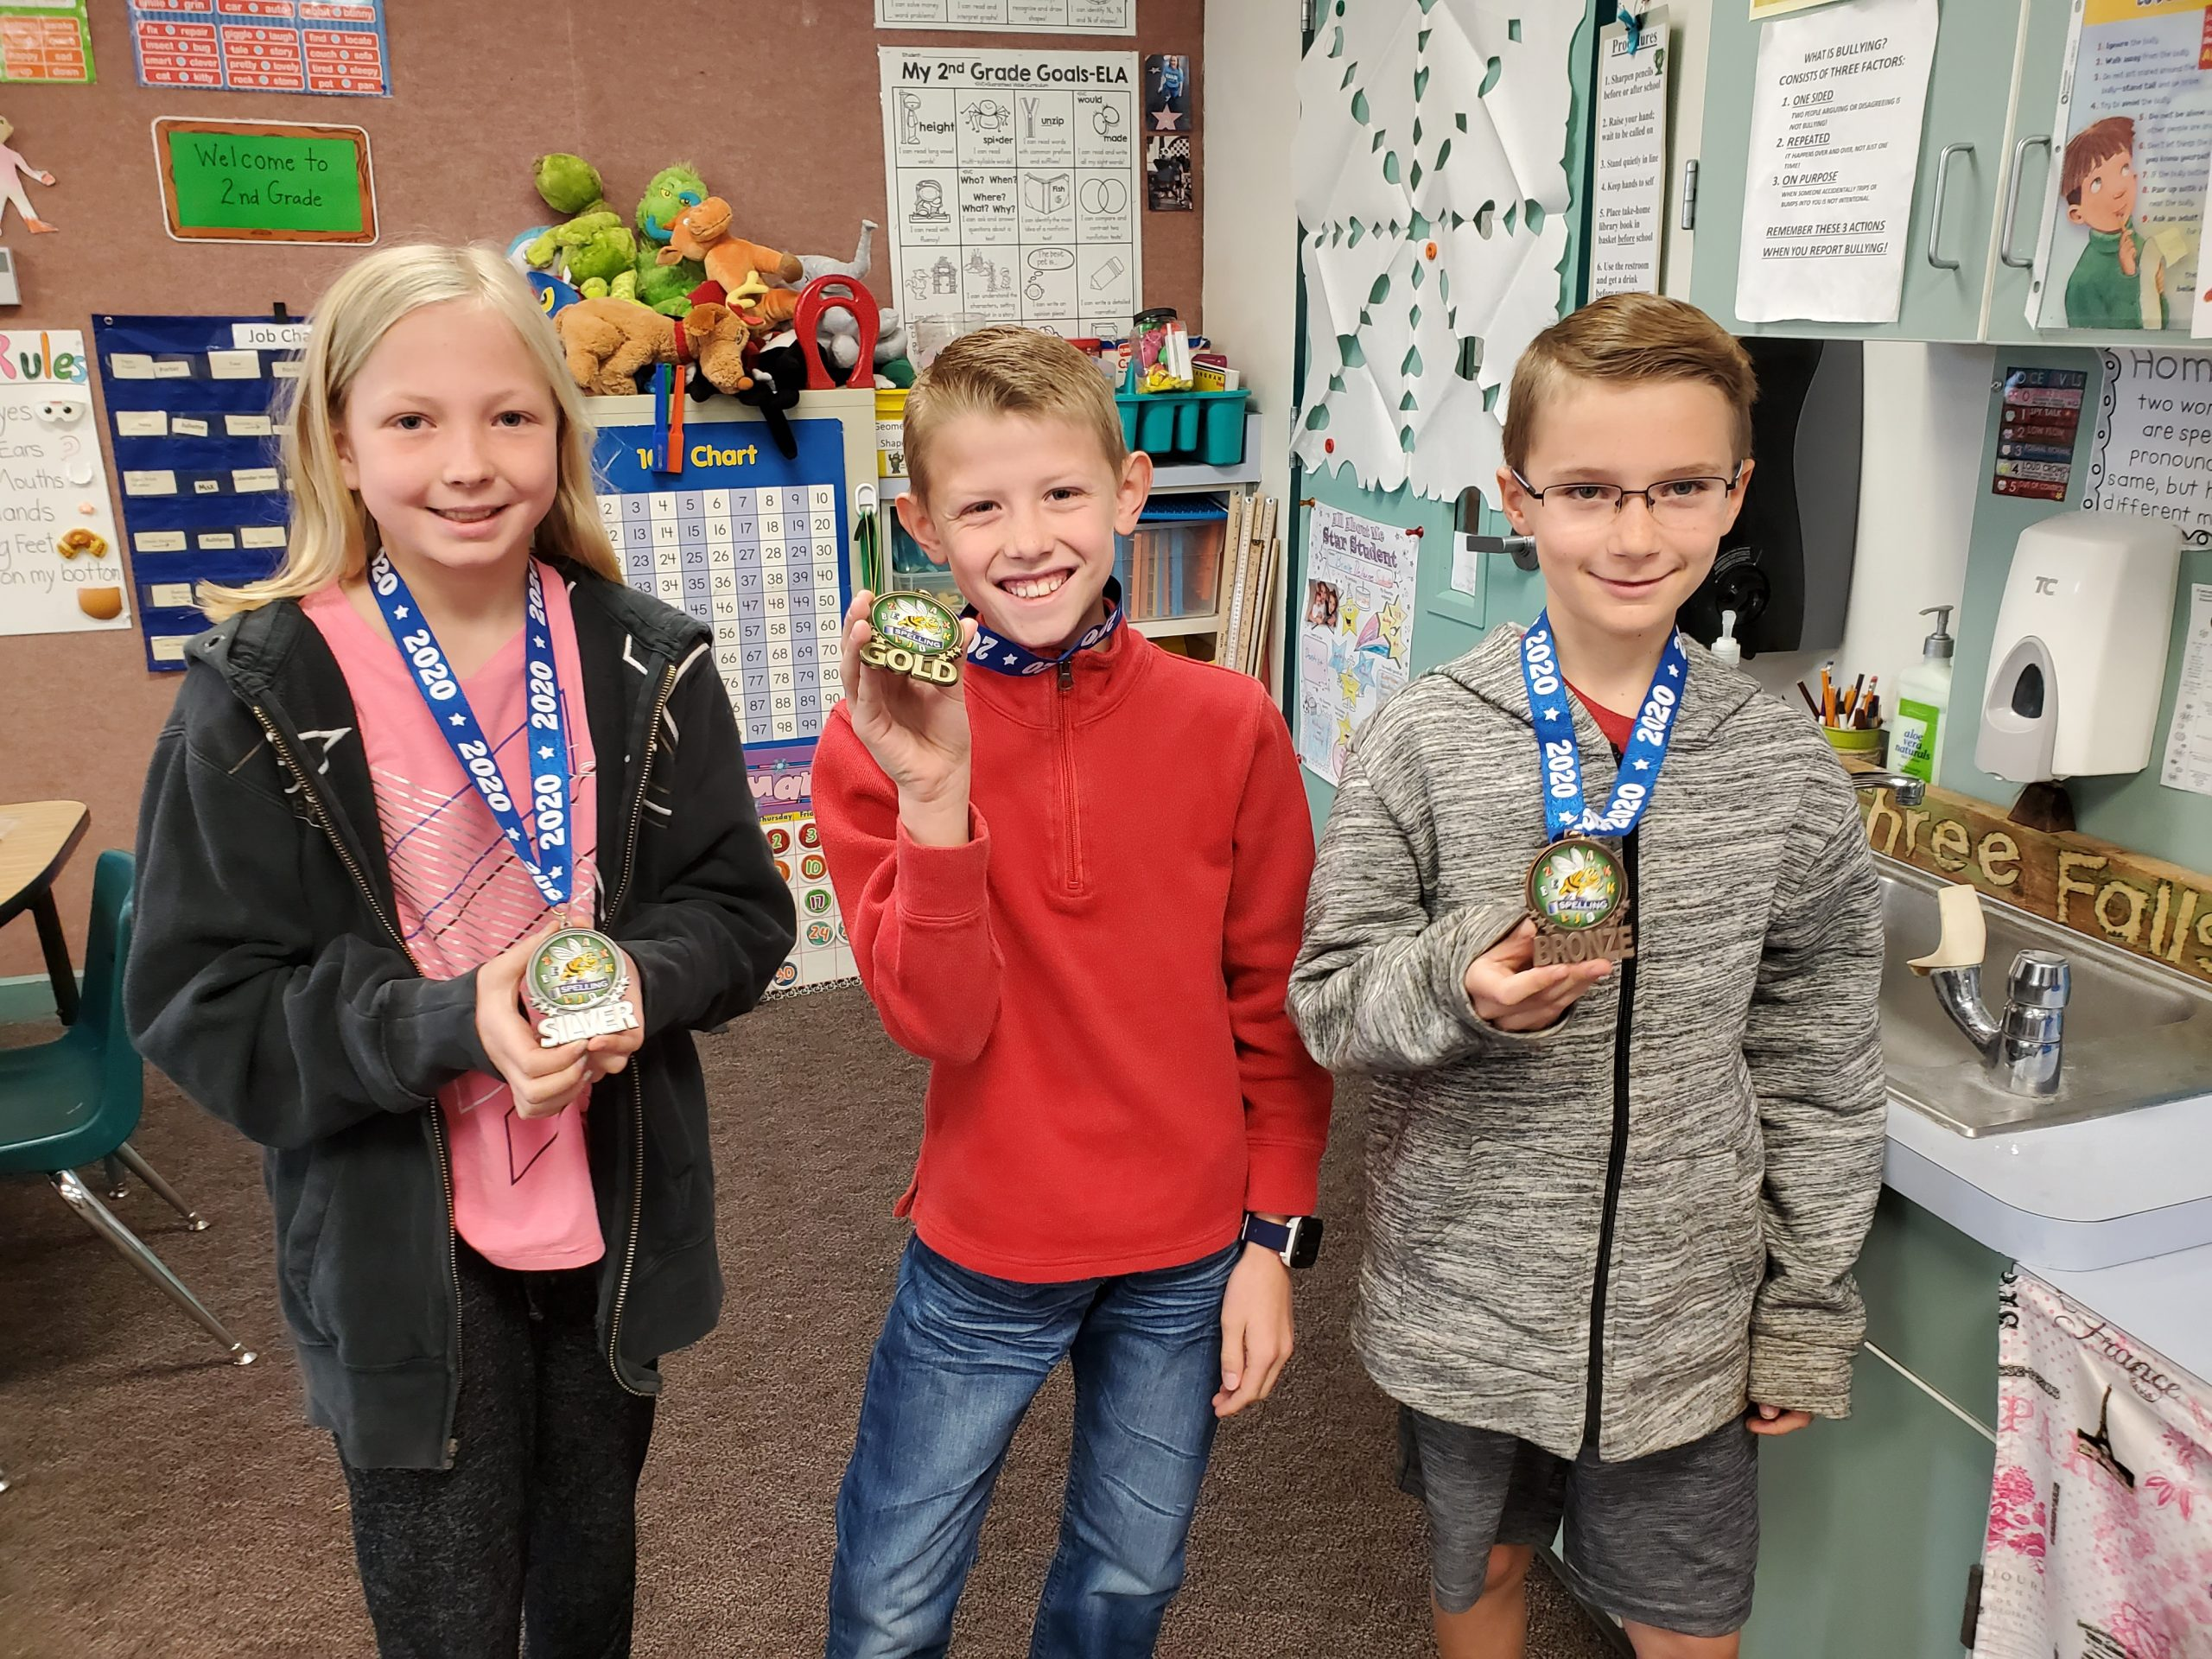 2020 Spelling Bee Winners Pose With Medals